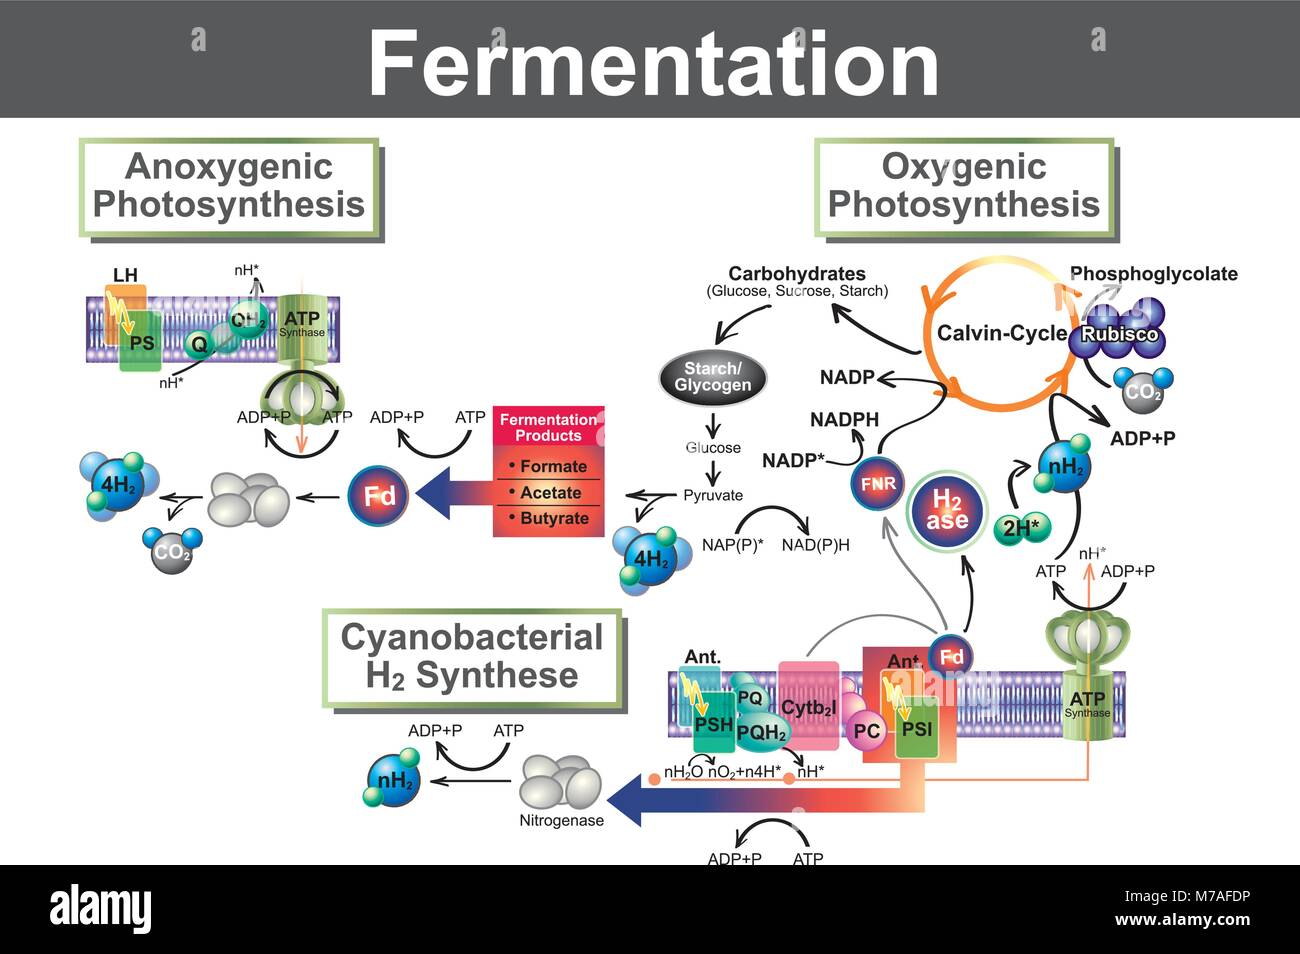 Fermentation is a metabolic process that converts sugar to acids, gases or alcohol. It occurs in yeast and bacteria, - Stock Image